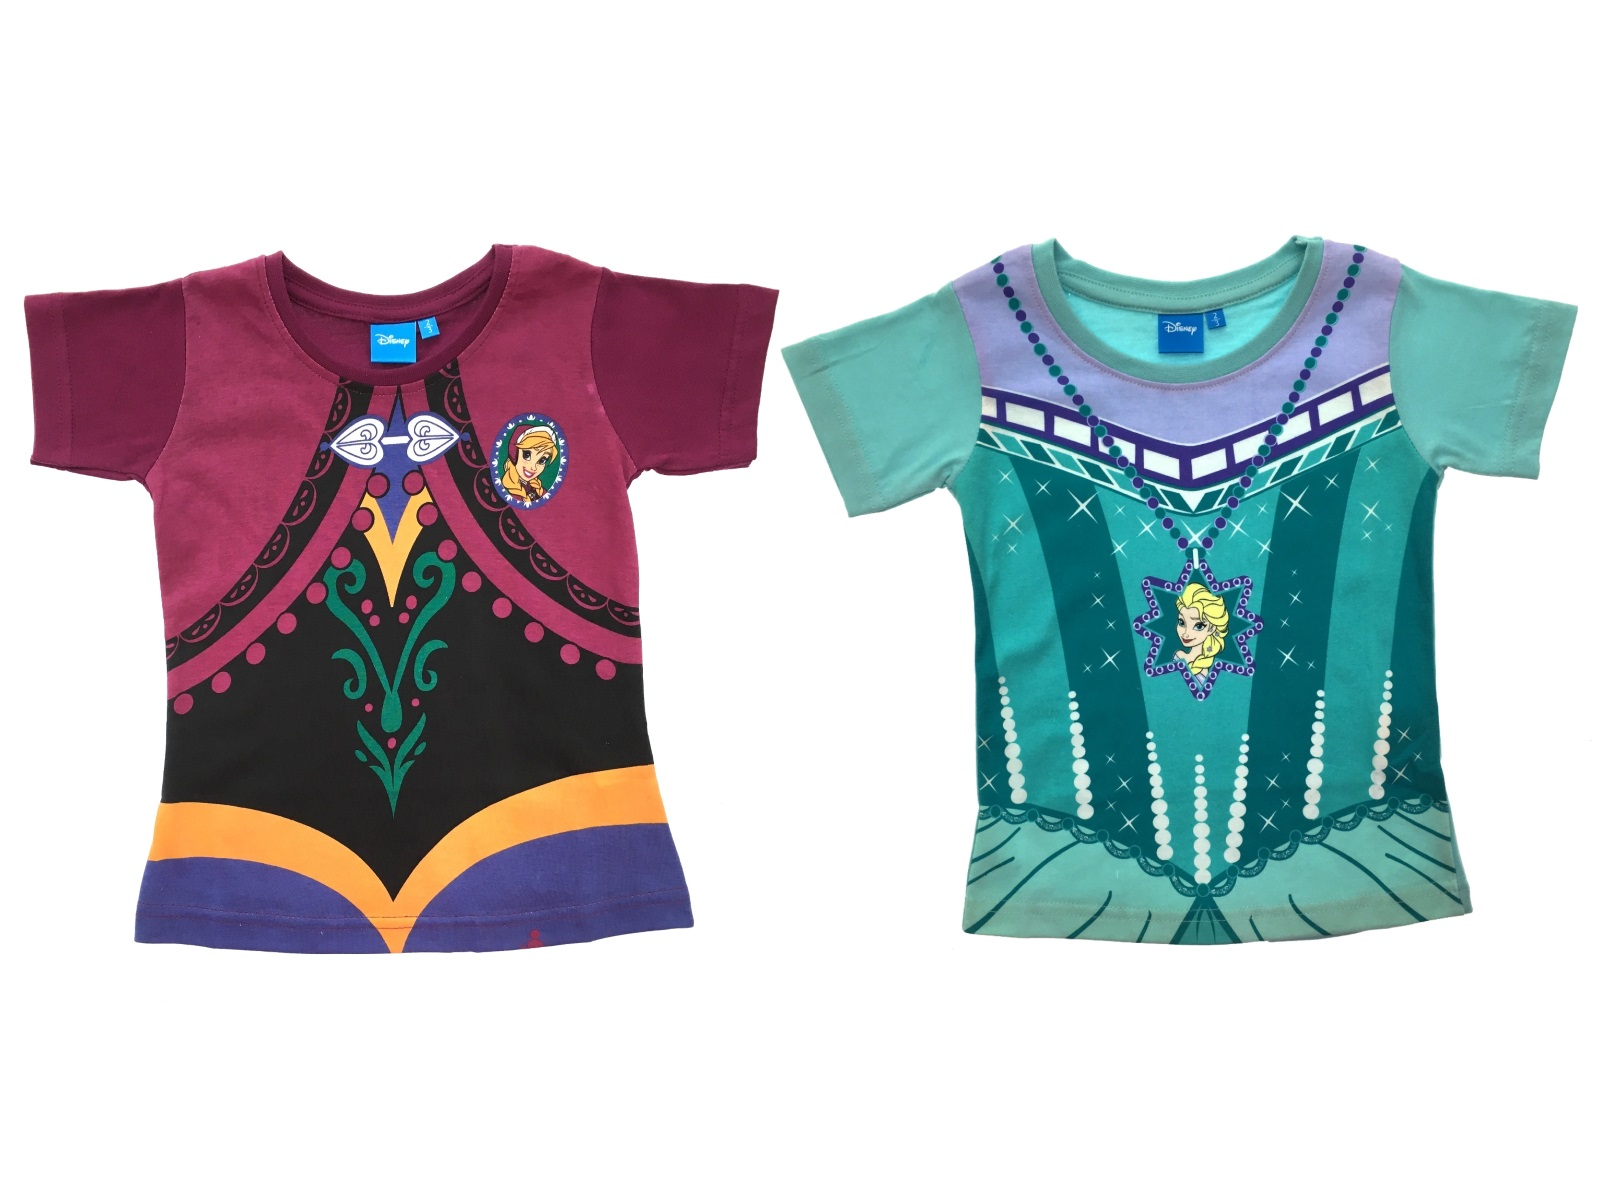 Girls Disney Frozen Fancy Dress Up Costume Short Sleeve Anna Elsa T Shirt Size  sc 1 st  eBay & Girls Disney Frozen Fancy Dress Up Costume Short Sleeve Anna Elsa T ...